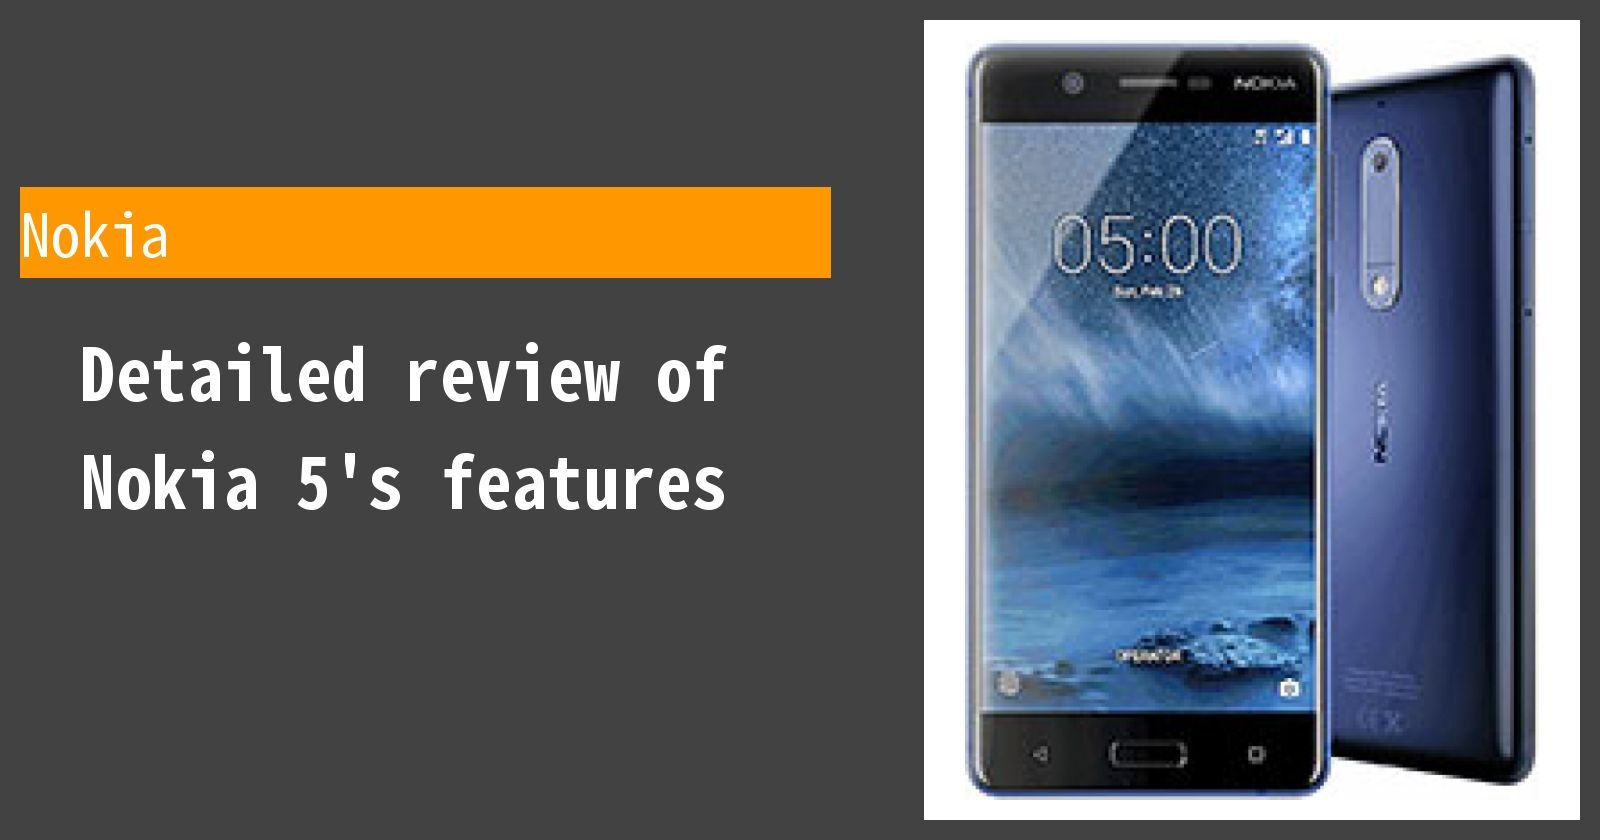 Detailed review of Nokia 5's features